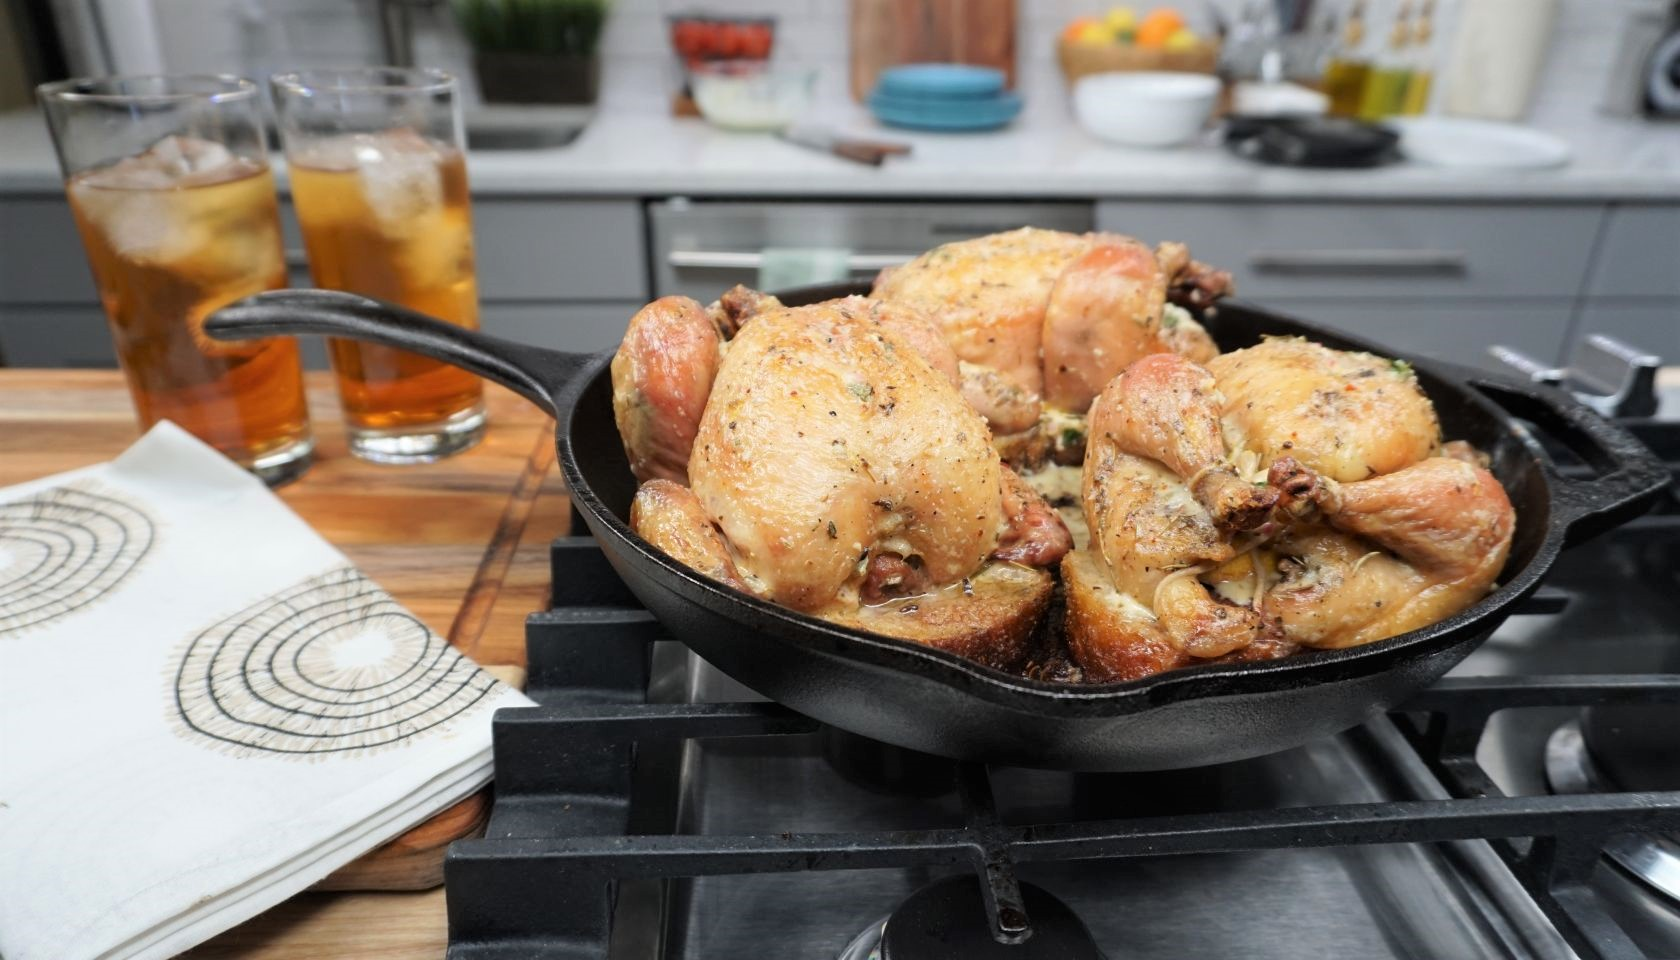 Discover Fresh Family Dinner Ideas on Cleo TV's New Soul Kitchen